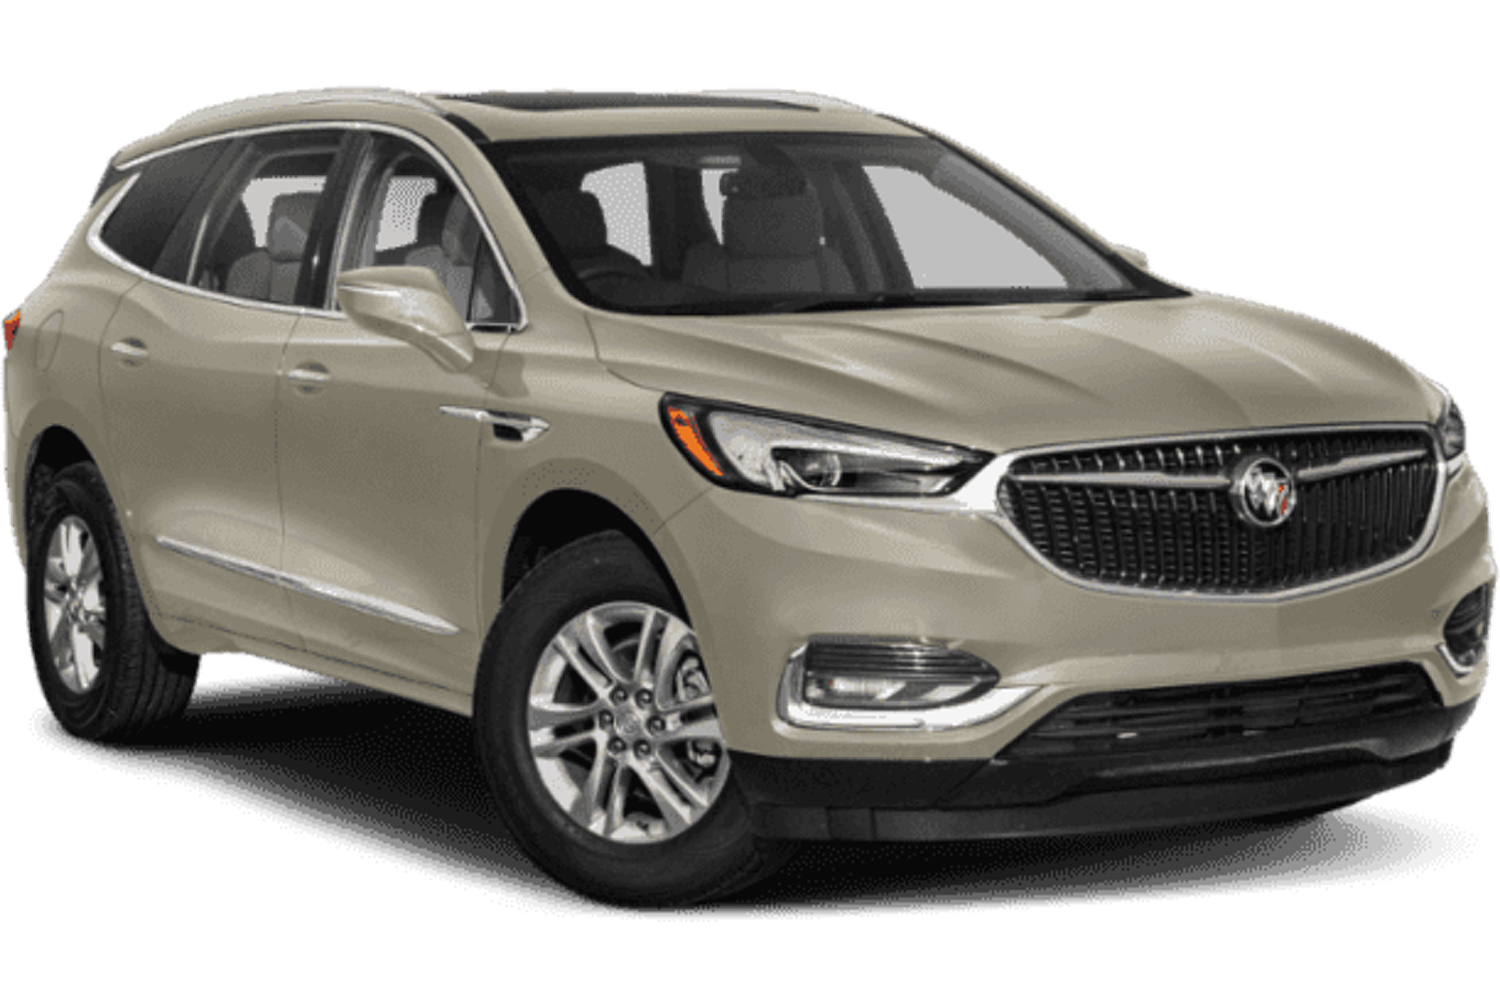 2020 Buick Enclave Gets New Champagne Gold Color | Gm Authority New 2022 Buick Enclave Avenir Owners Manual, Pictures, Colors